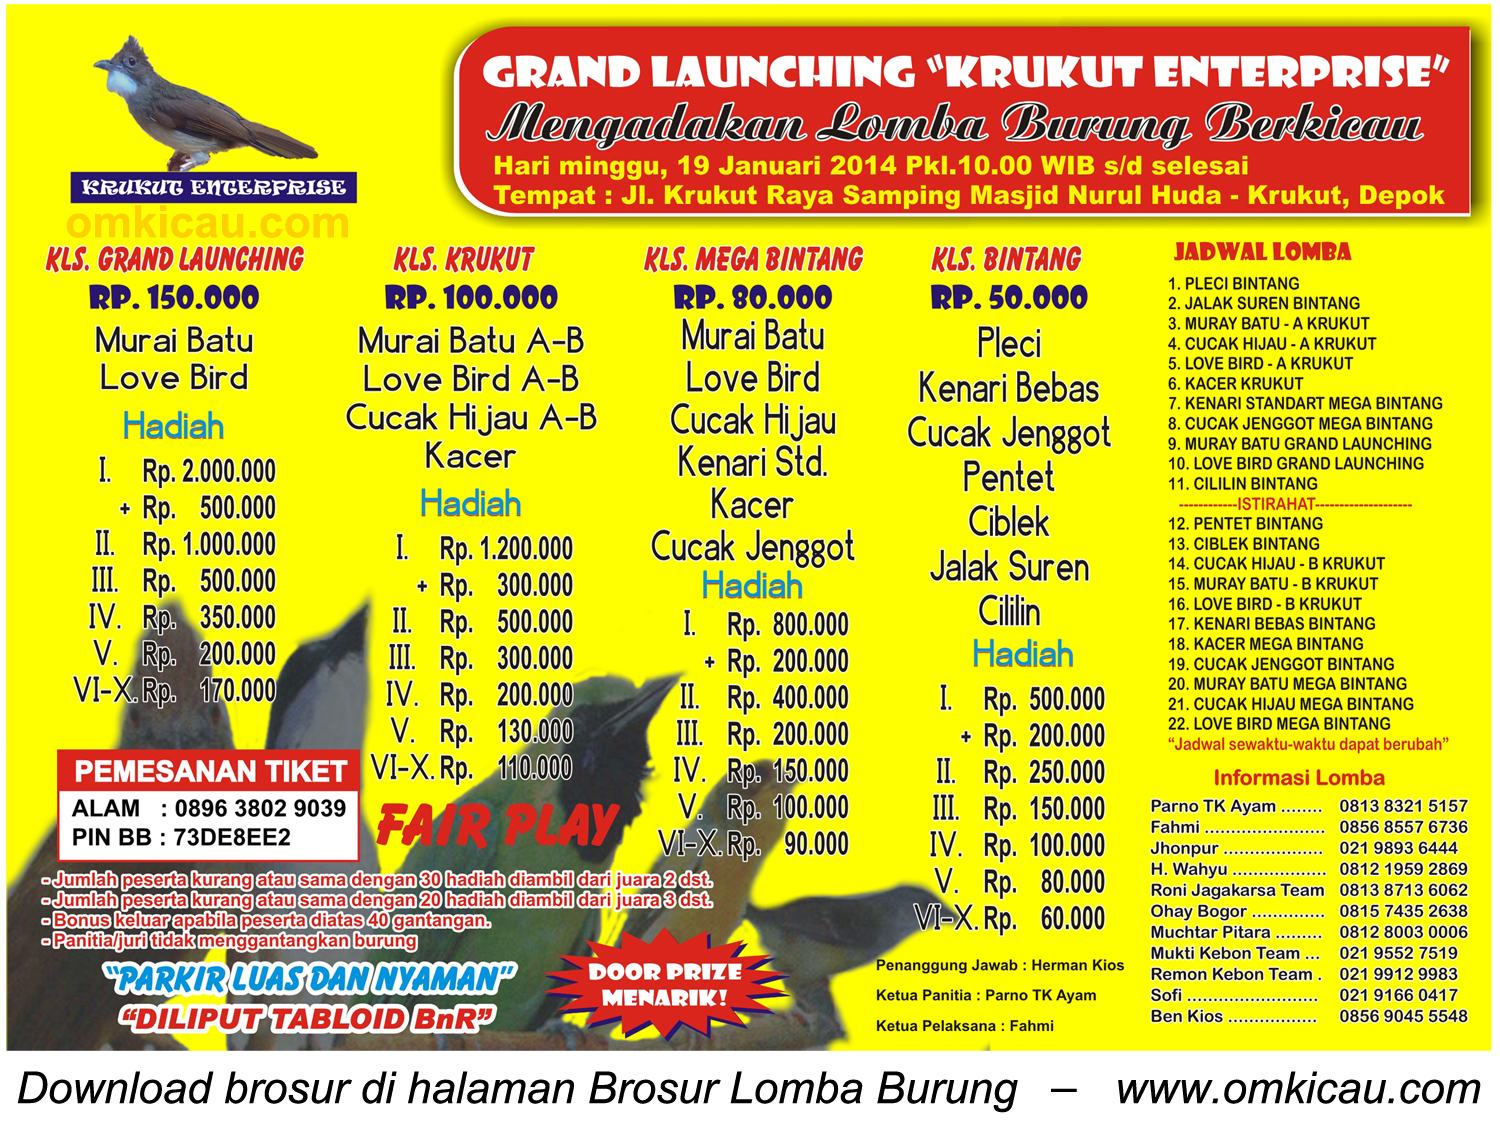 Brosur Lomba Burung Grand Launching Krukut Enterprise, Depok, 19 Januari 2014